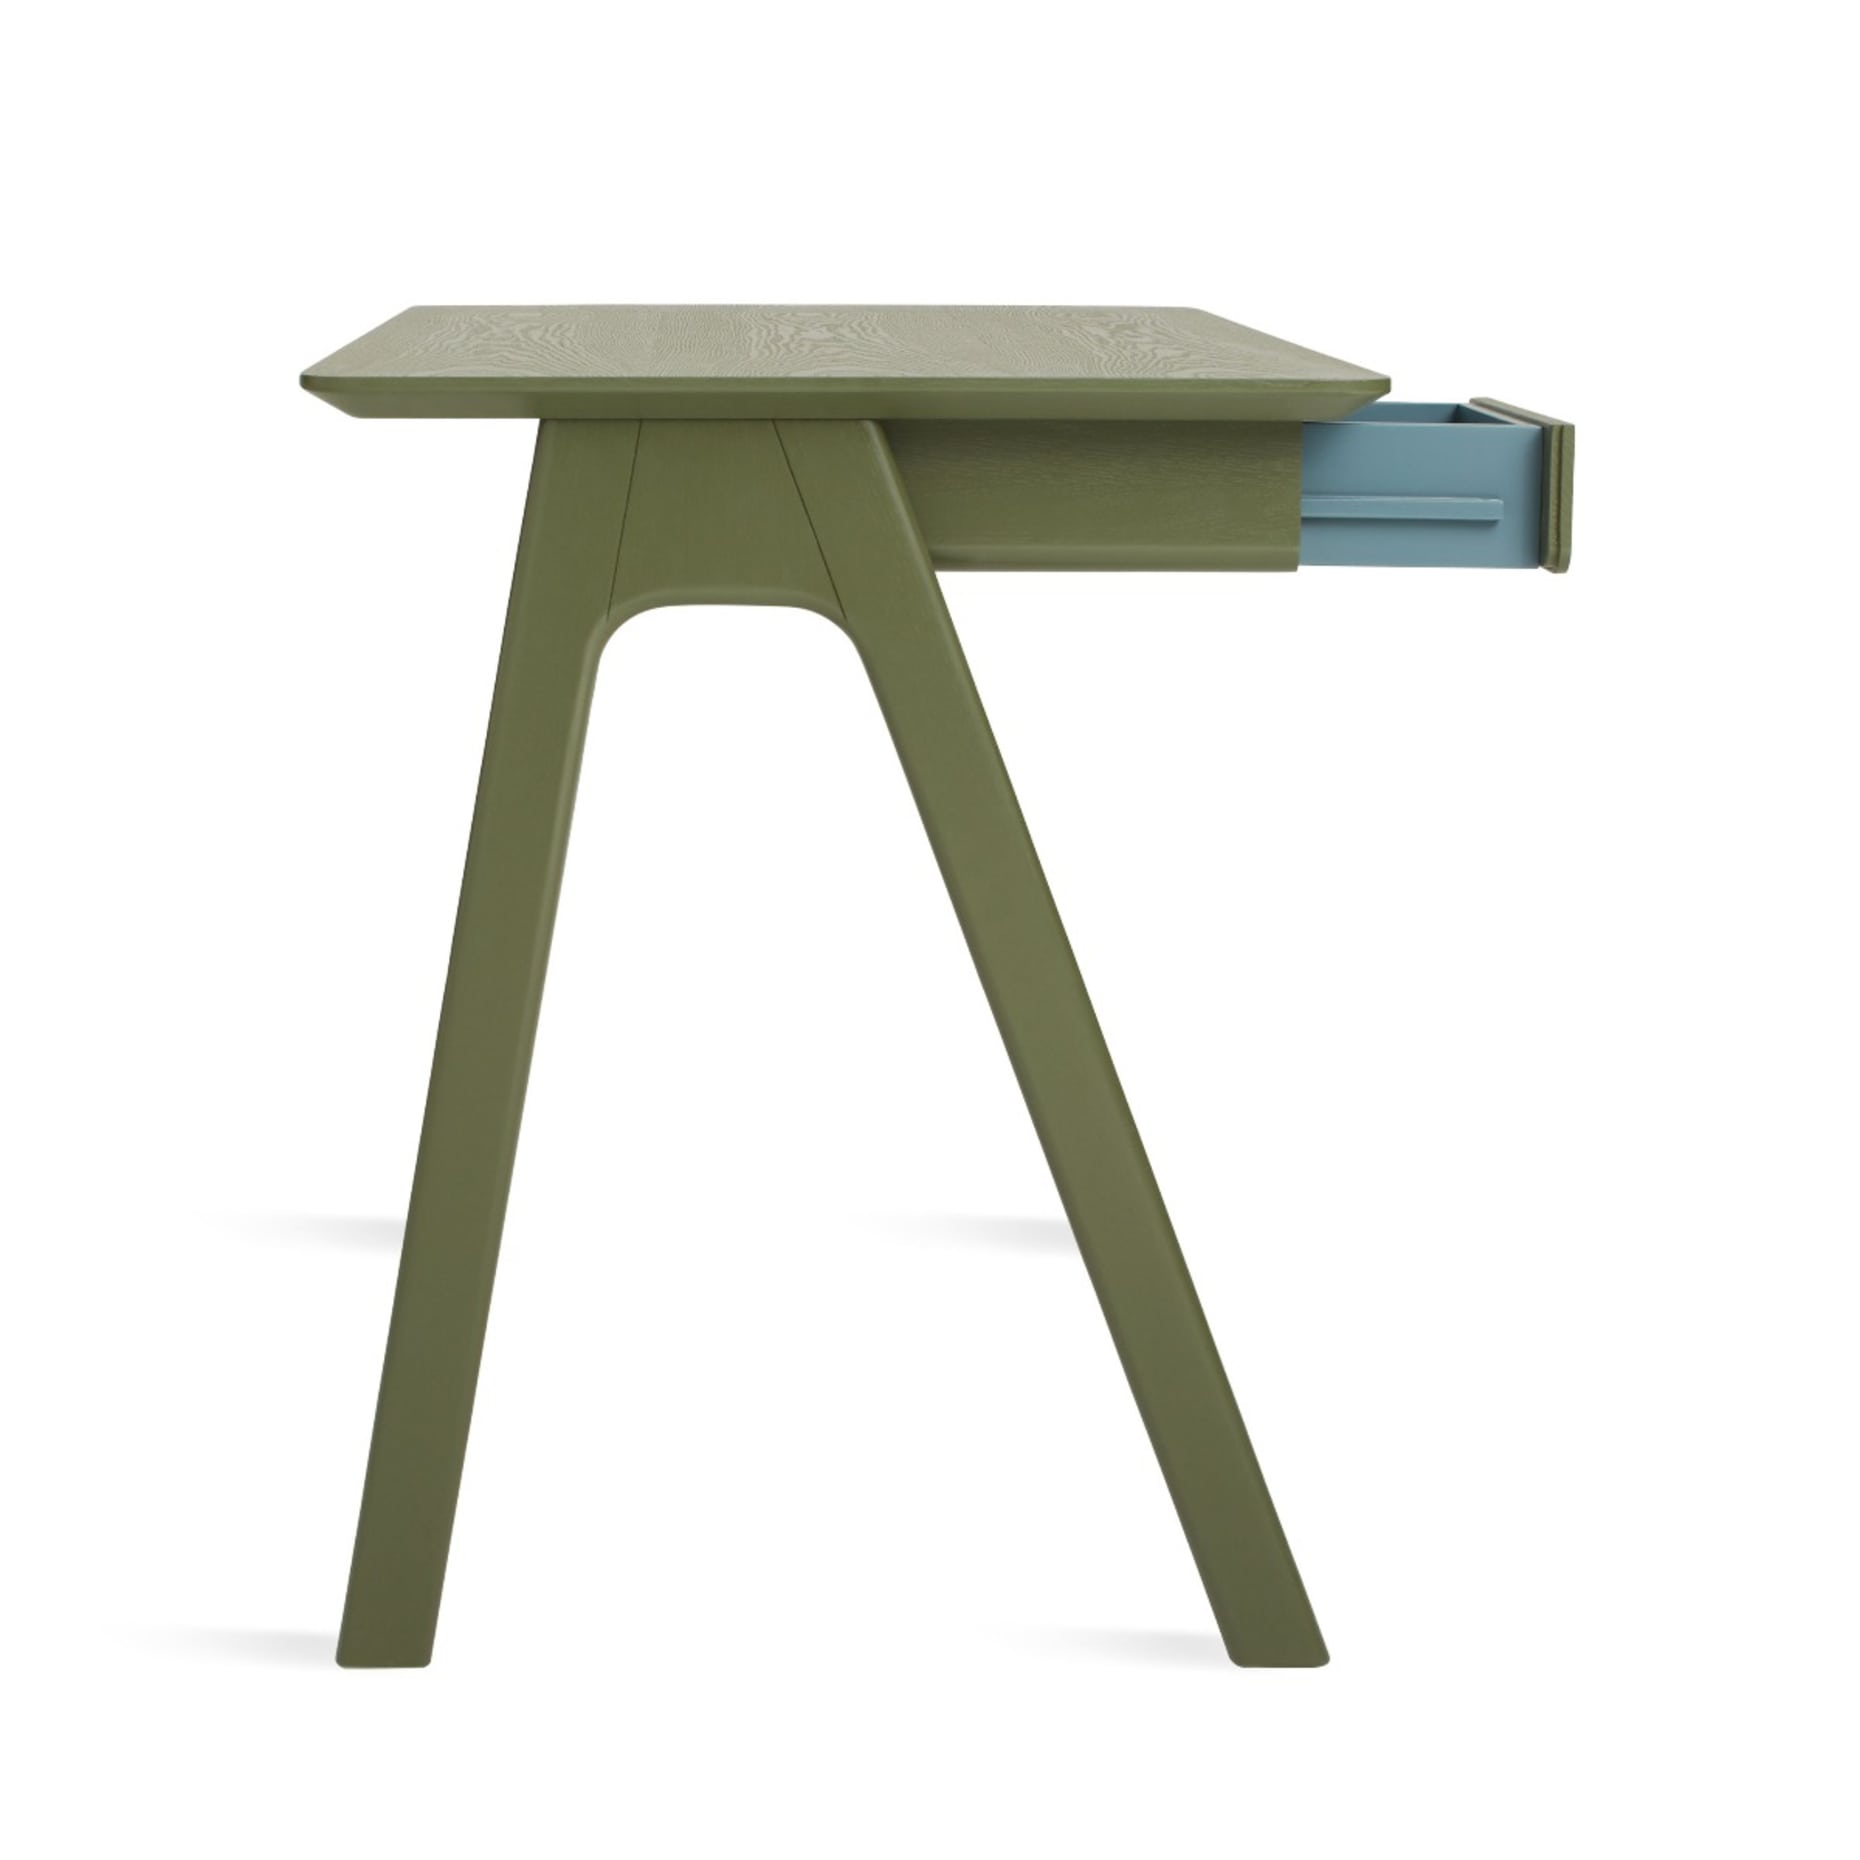 ss1 smdesk ol sidelow draweropen stash desk olive 1